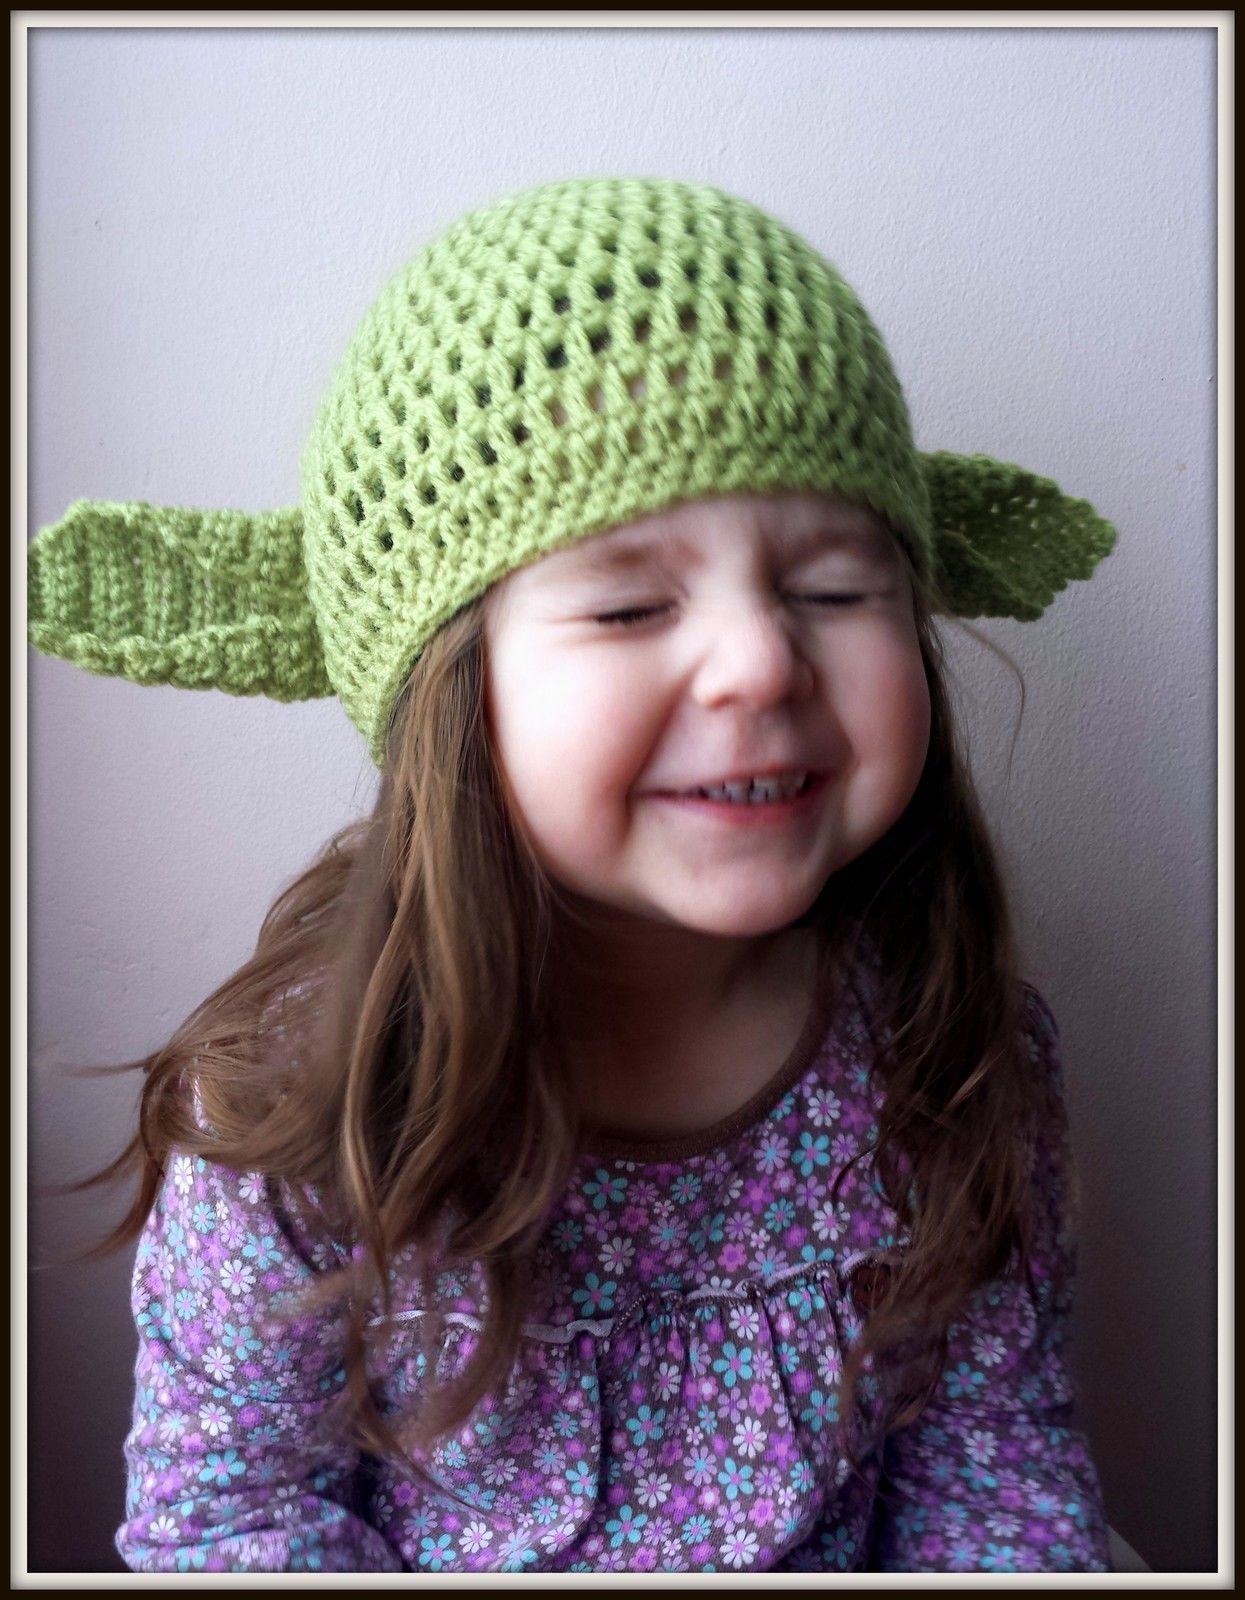 e642147ab57 ... usa crochet green star wars baby yoda hat photo props costume 3 6 months  to adult